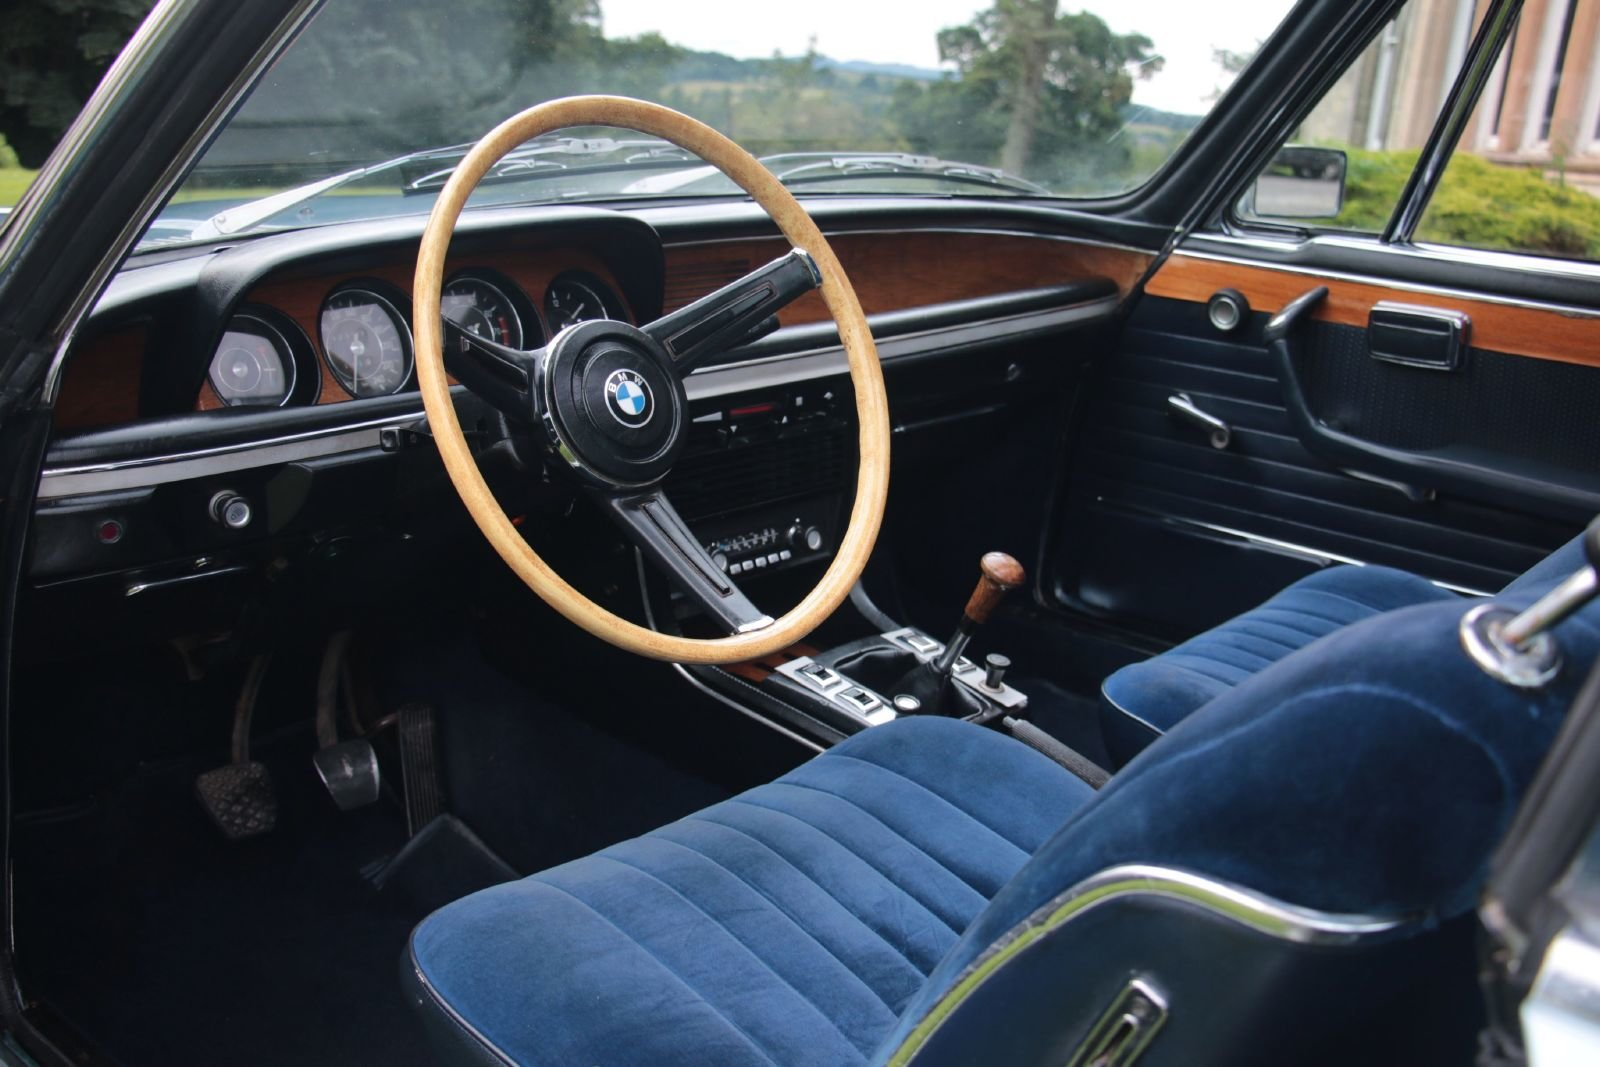 1971 E9 bmw 3.0 cs coupe lhd csl csi For Sale (picture 5 of 6)